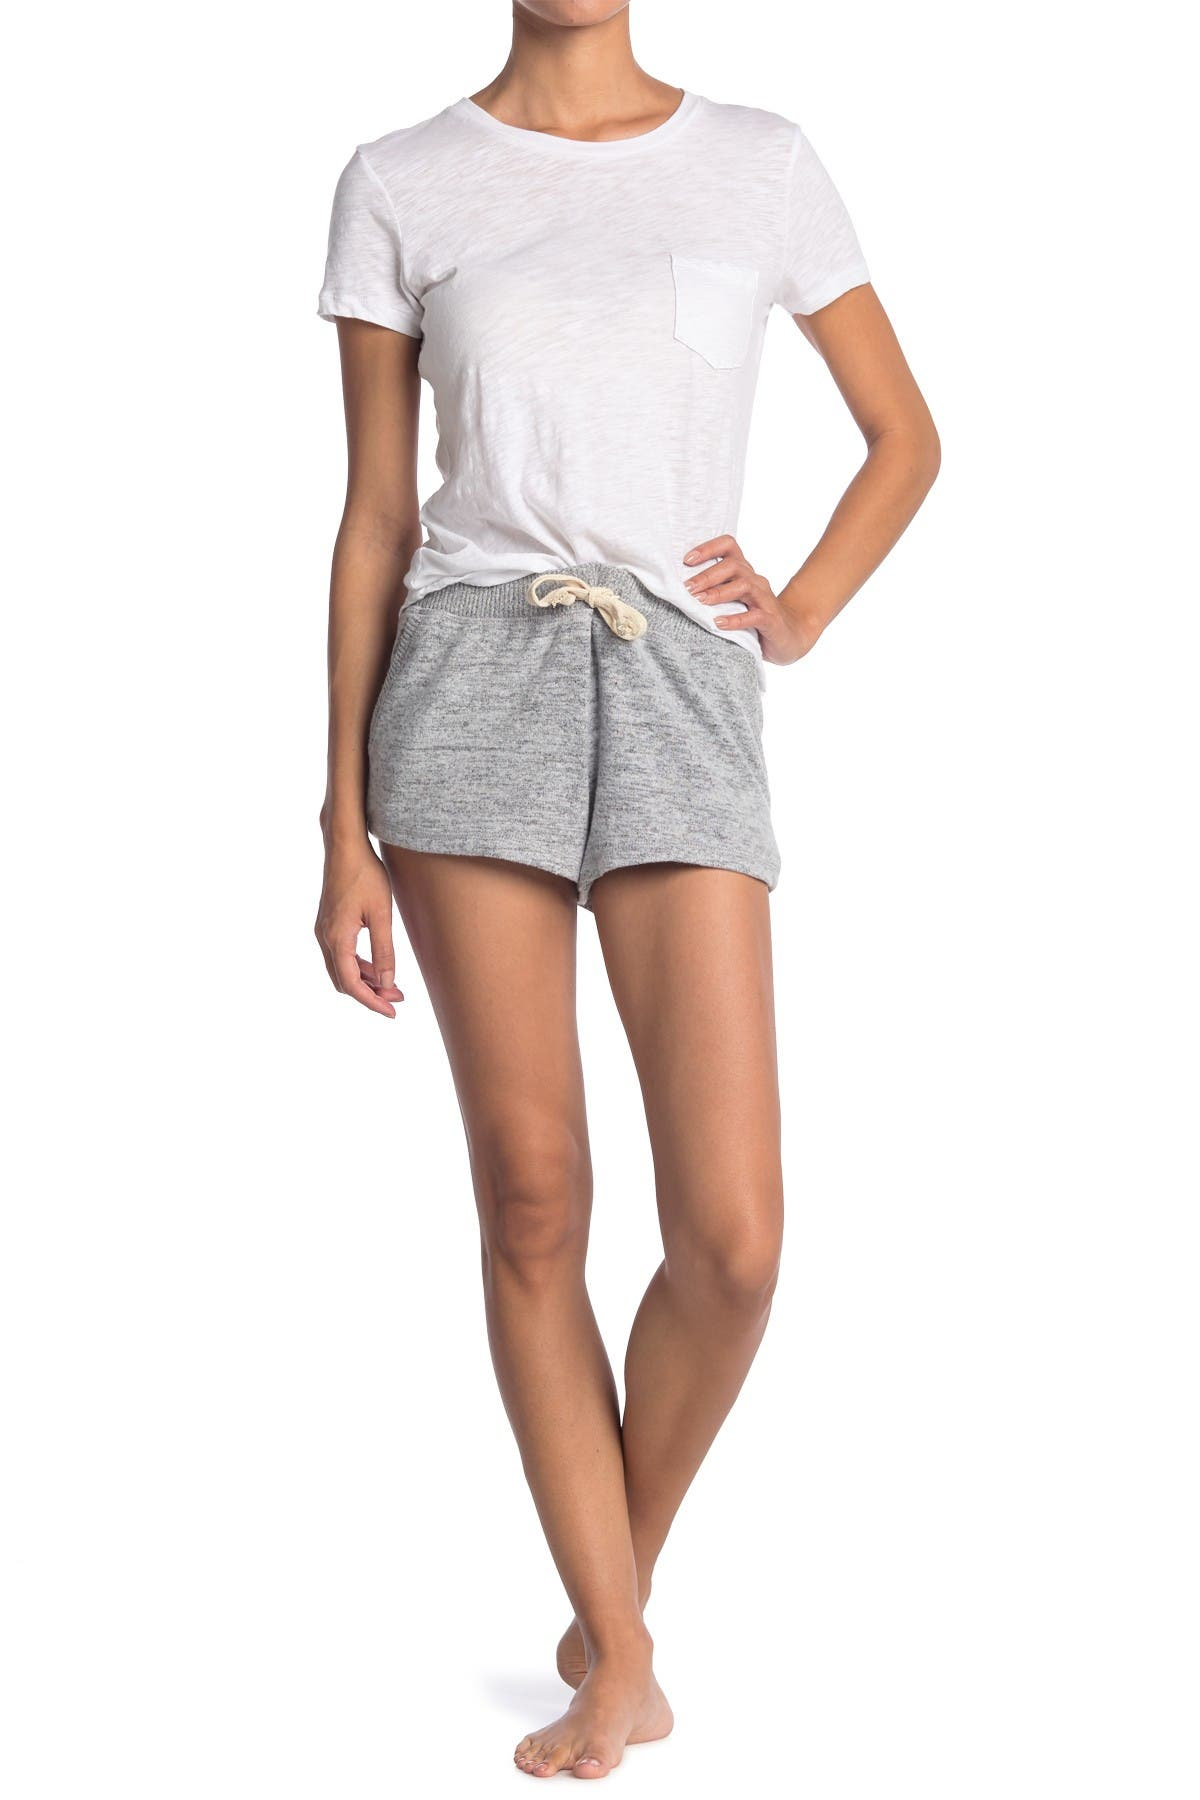 Image of Theo and Spence Yummy Brushed Knit Shorts